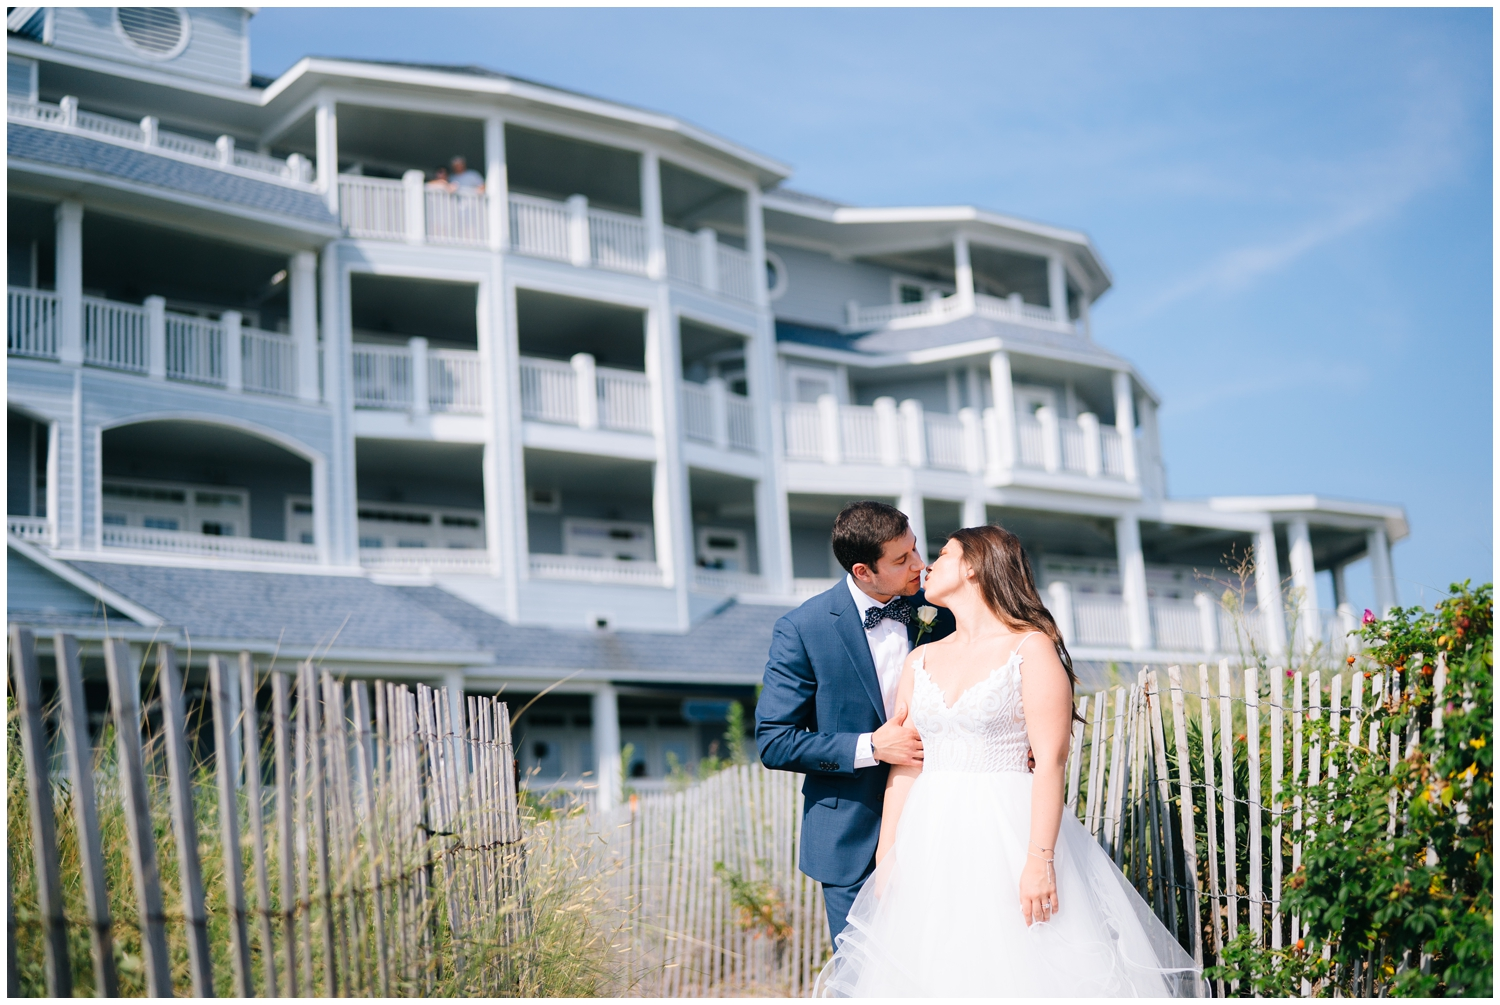 Madison Beach Hotel Wedding - Steven & Jessica_0113.jpg